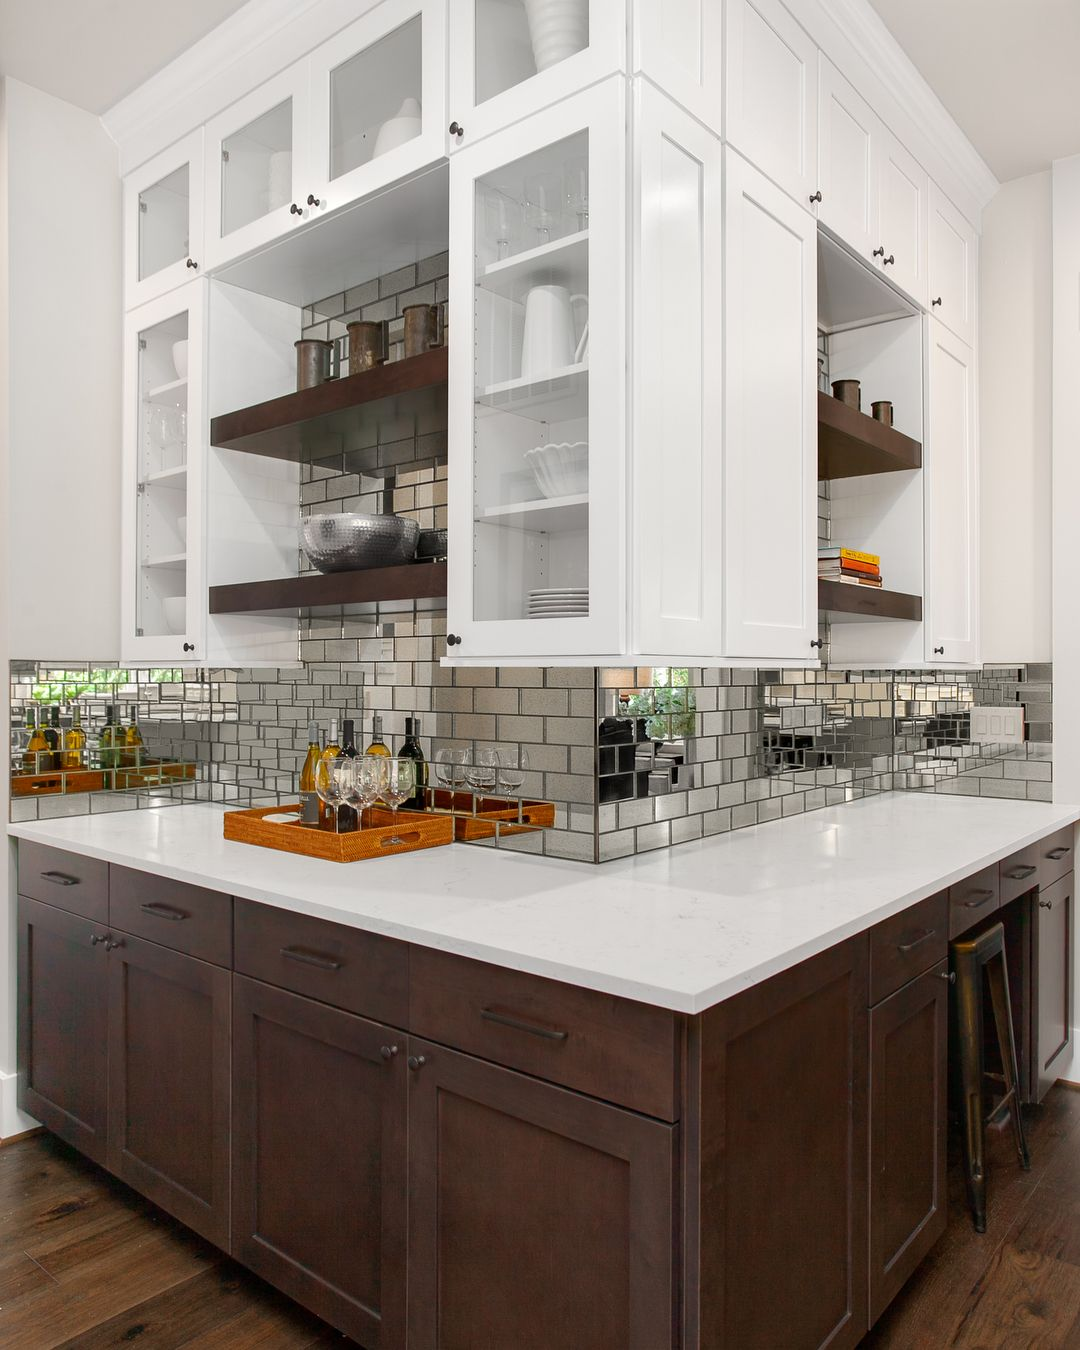 - Adding Some Spice To The Butler's Pantry. Mirrored Backsplash